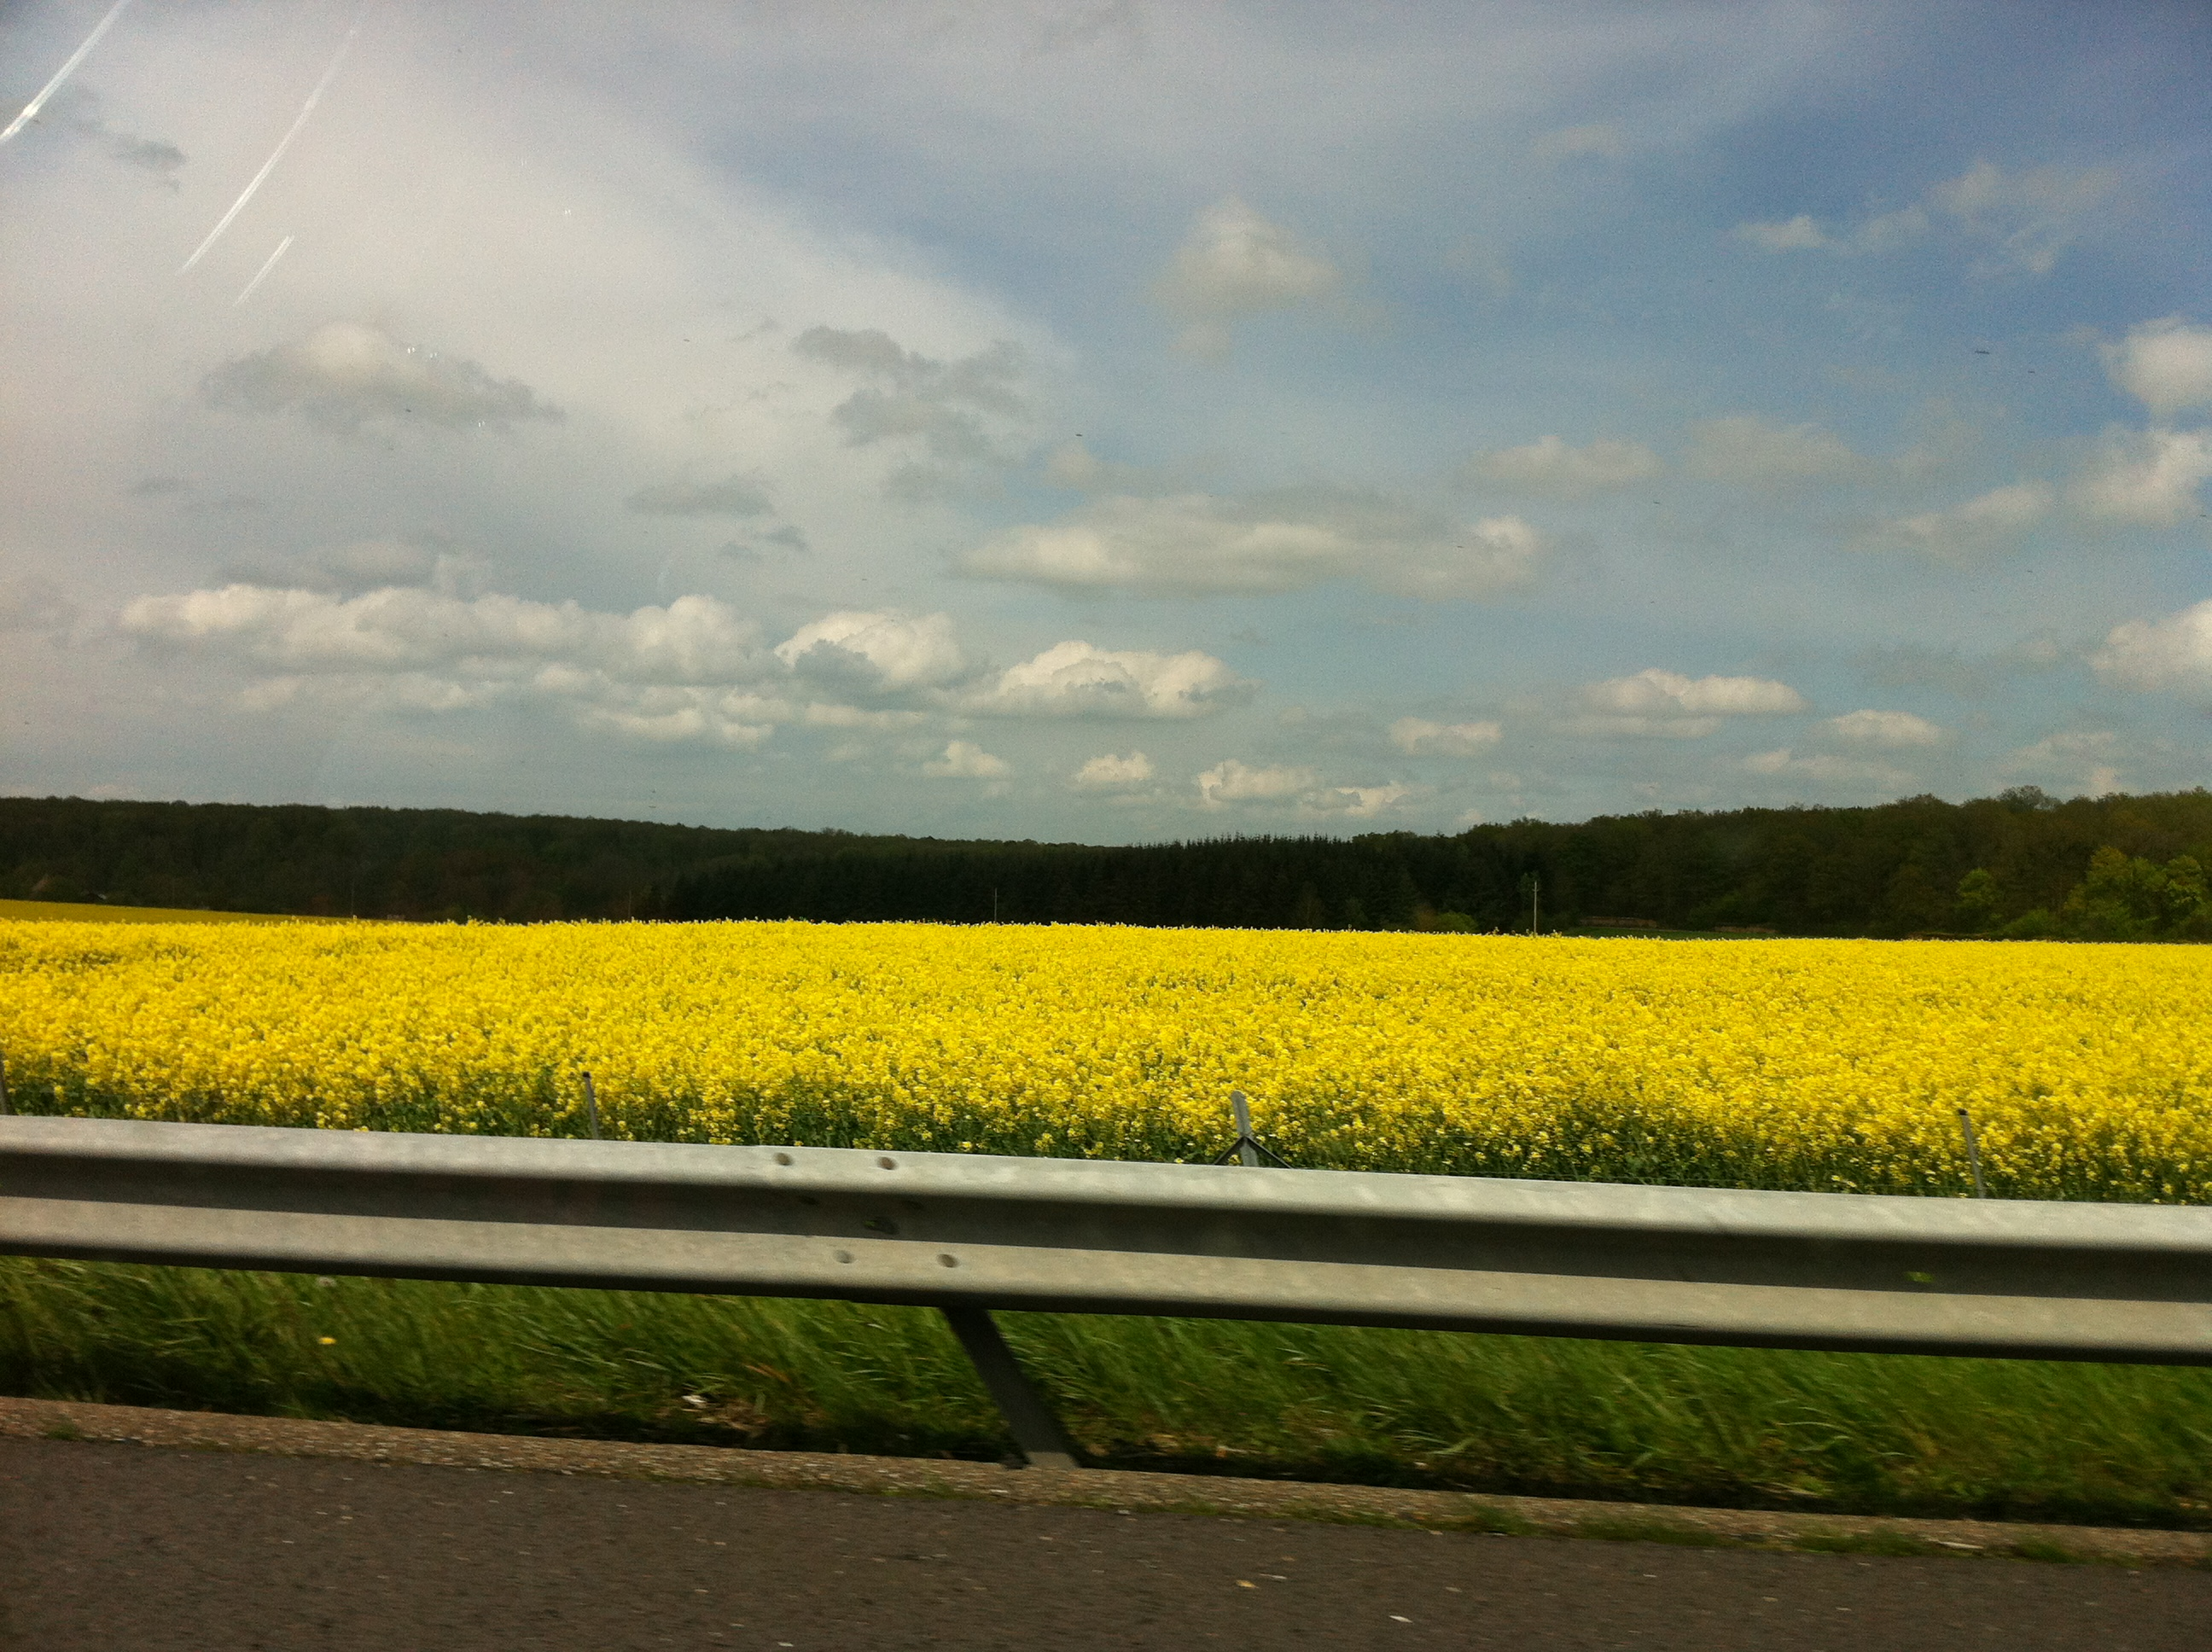 No idea what these are, but they're everywhere on the way to Normandy.